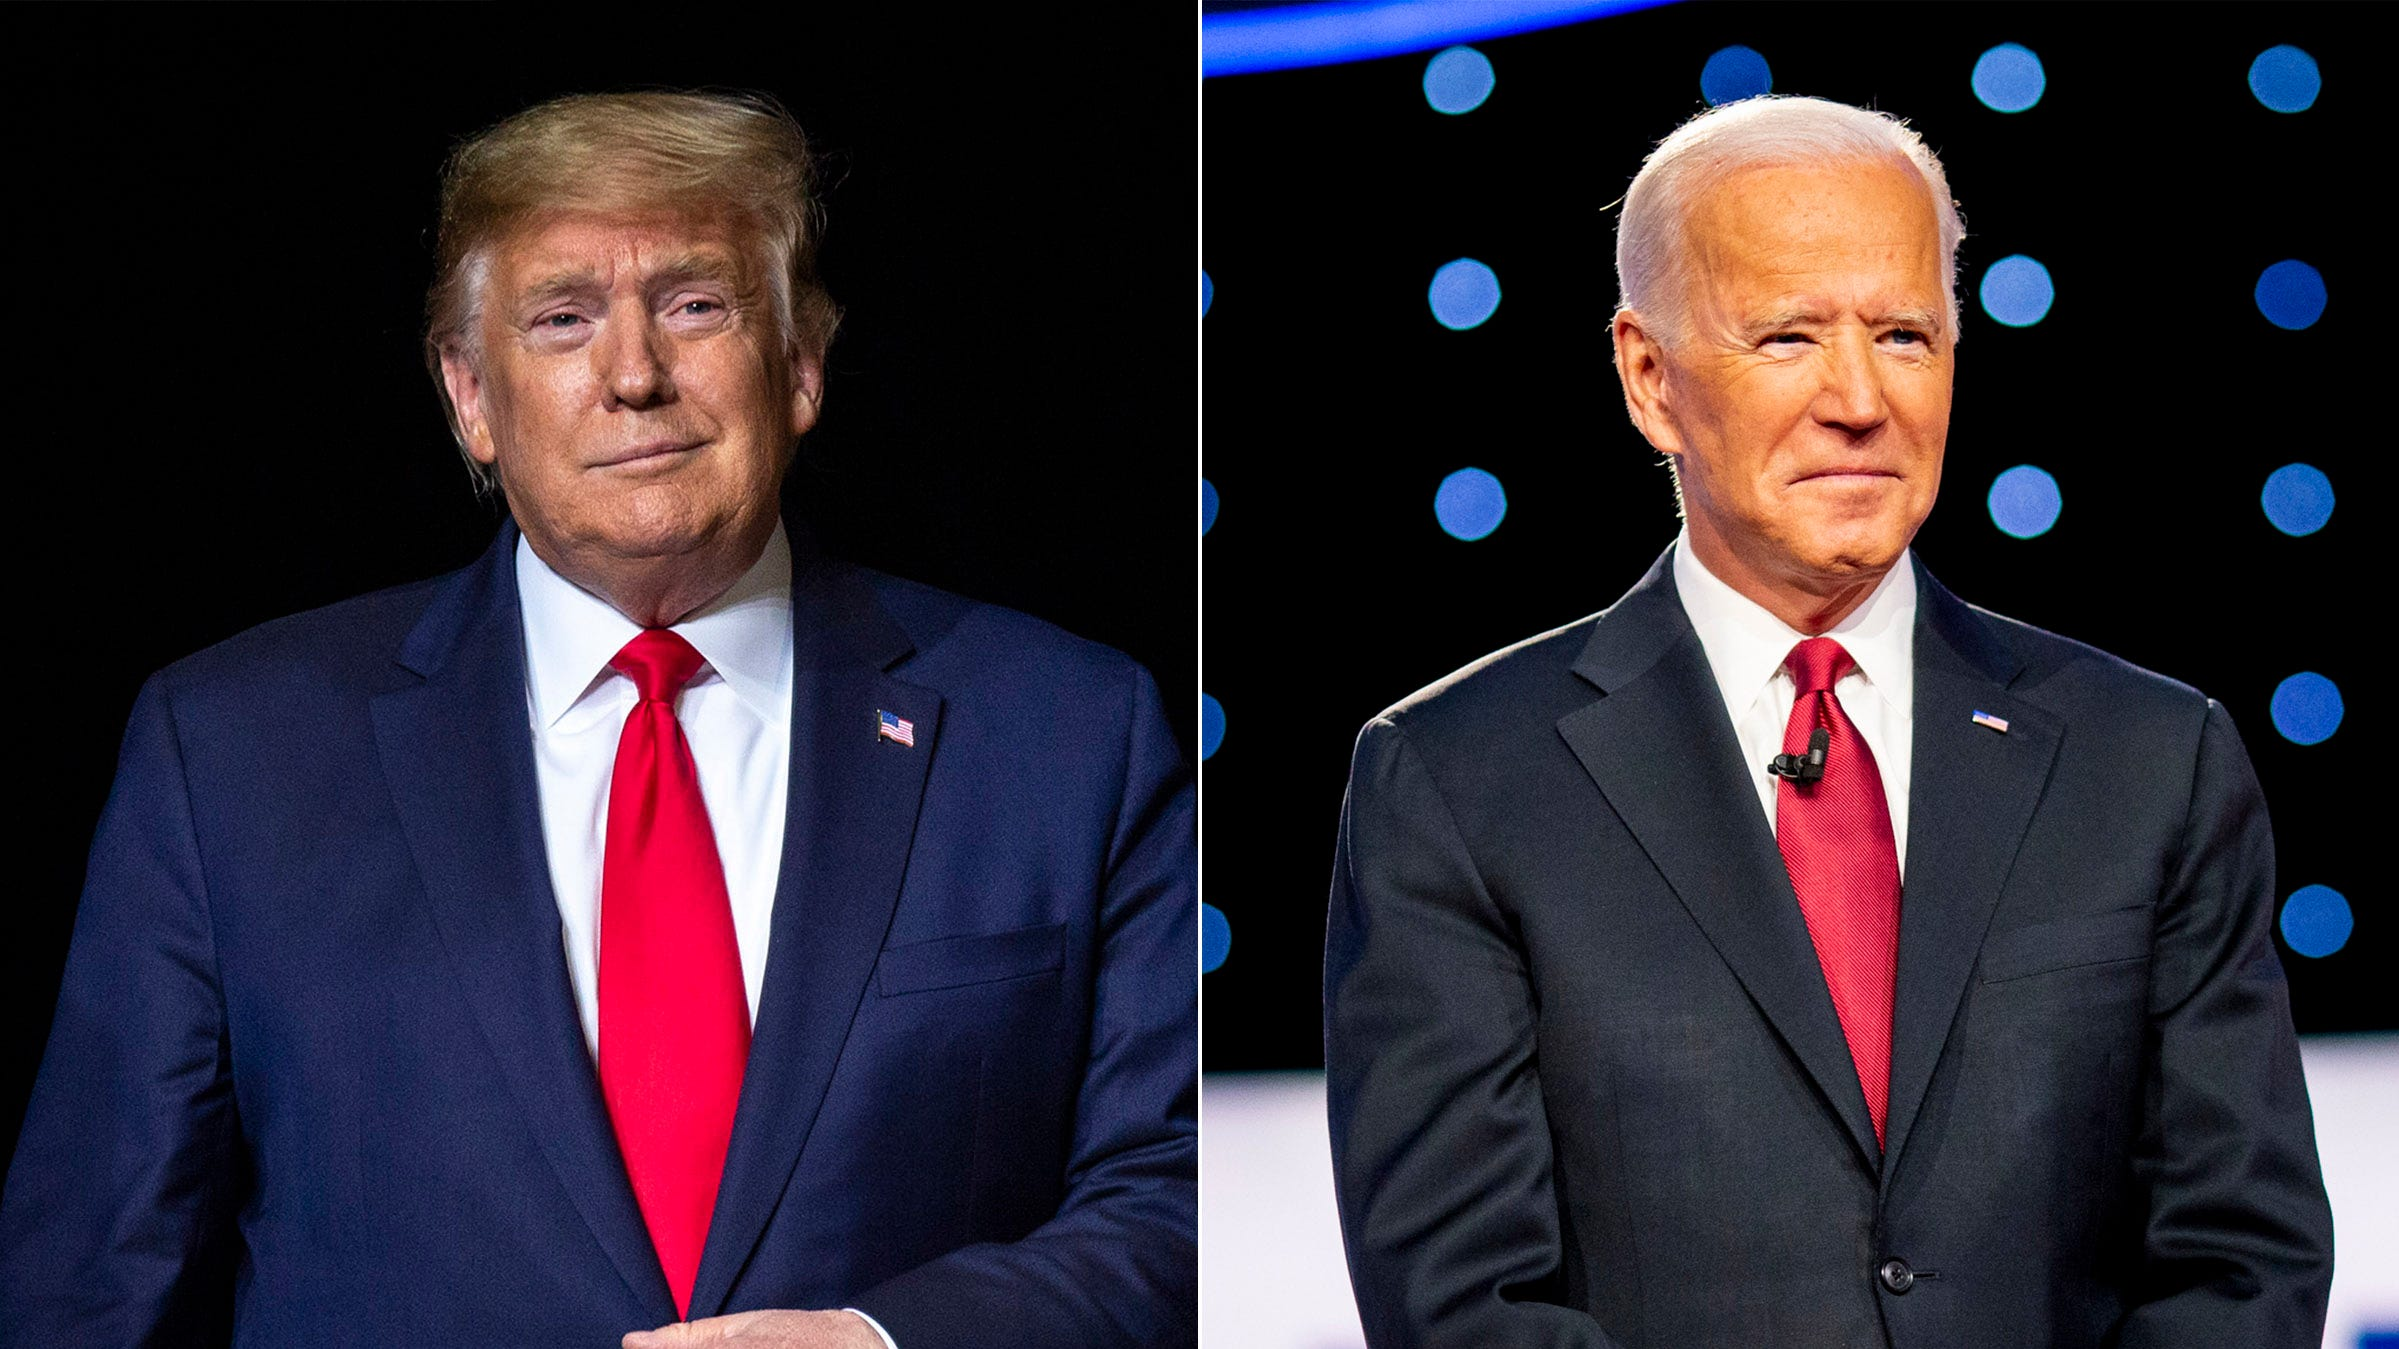 Biden Campaign Has Quite a Response to Trump Demand